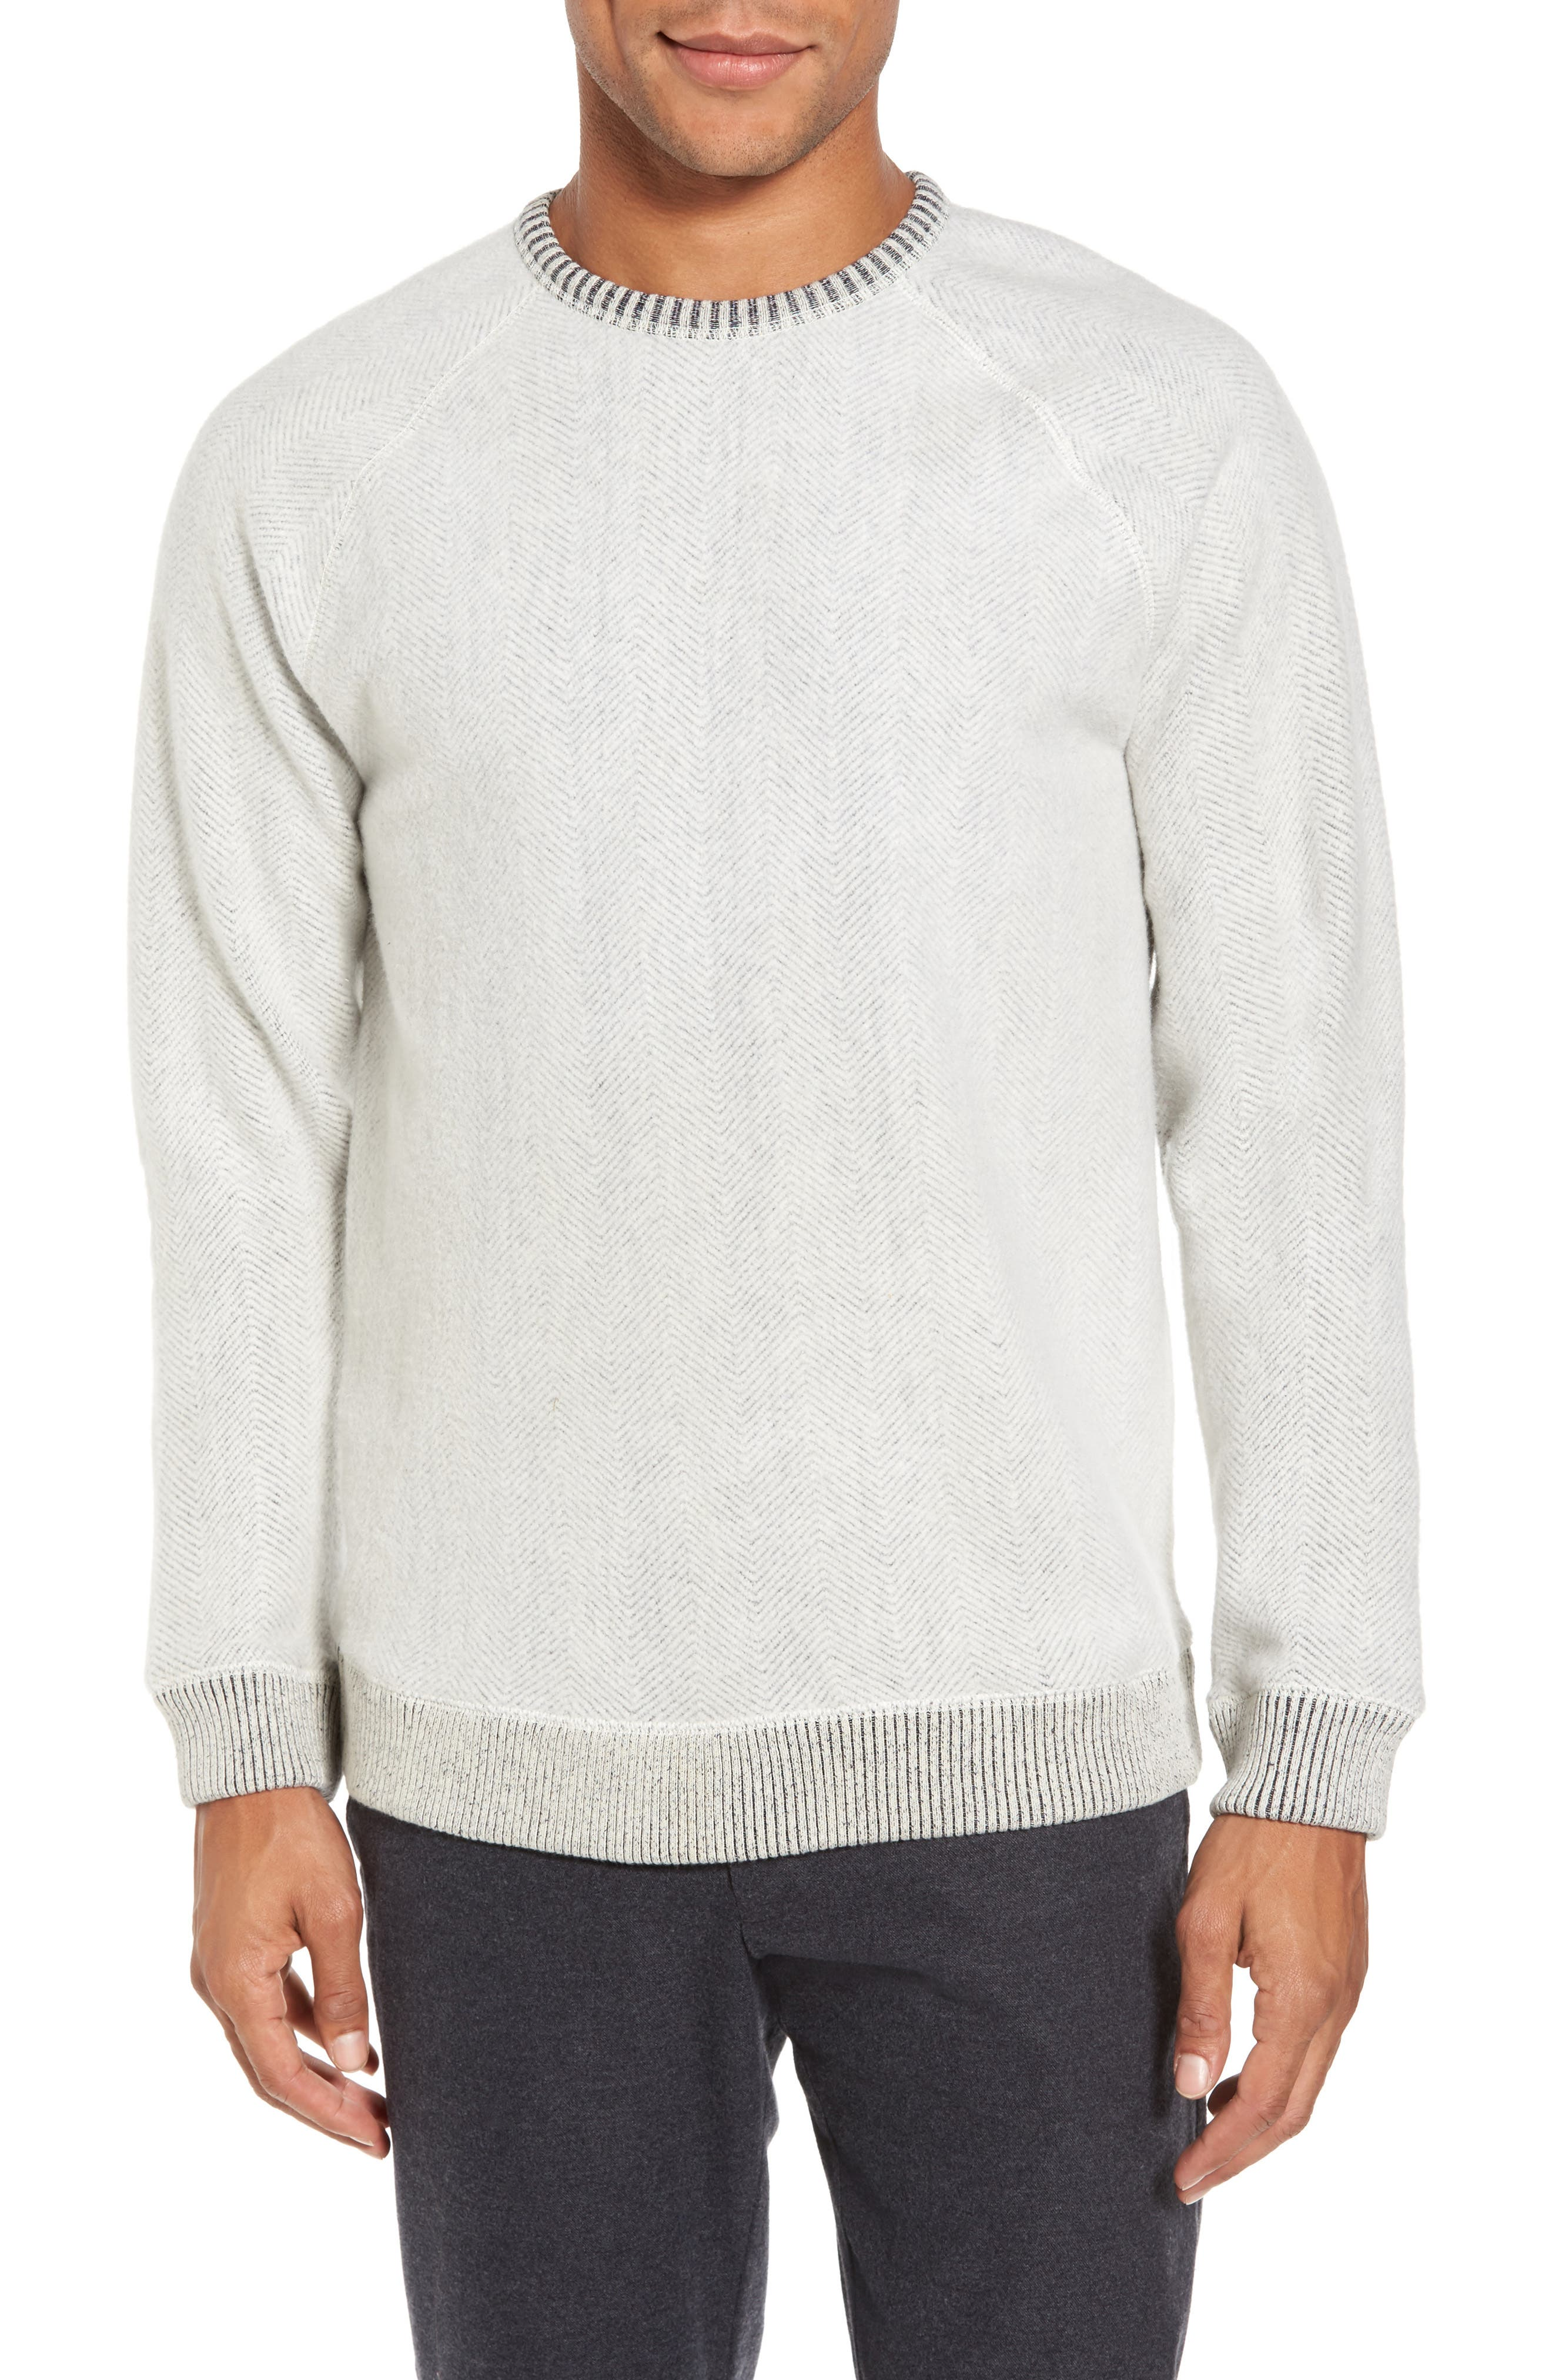 Main Image - Nordstrom Men's Shop Brushed Fleece Sweatshirt